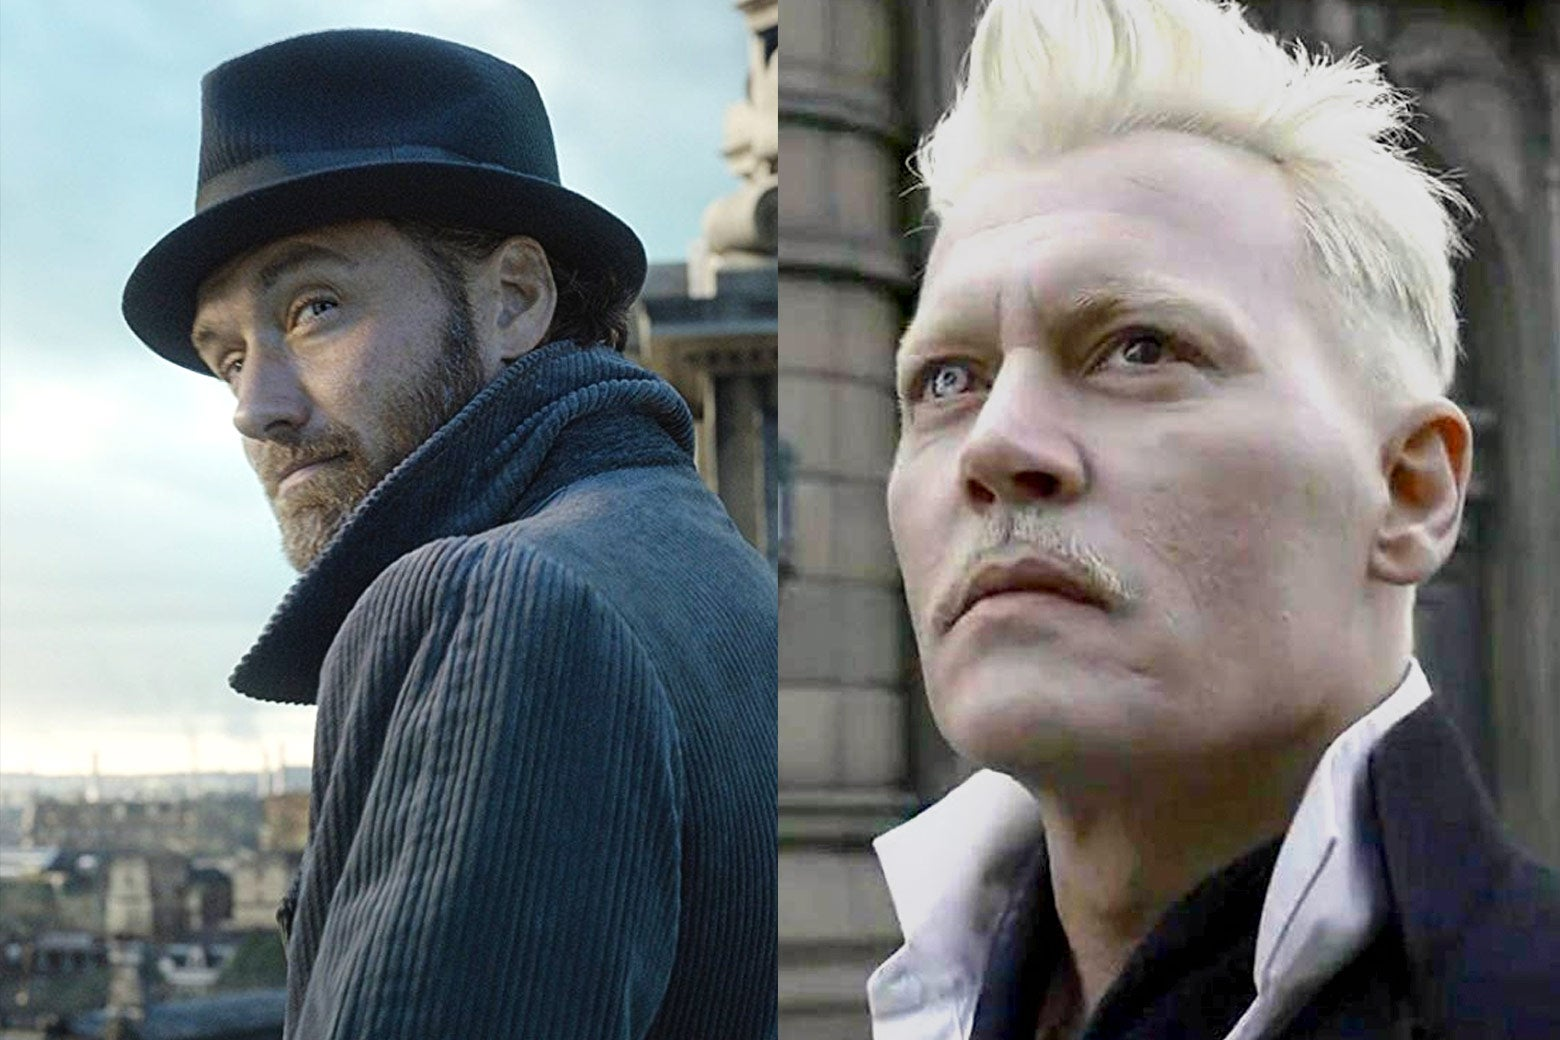 Dumbledore and Grindelwald in Fantastic Beasts: The Crimes of Grindelwald.